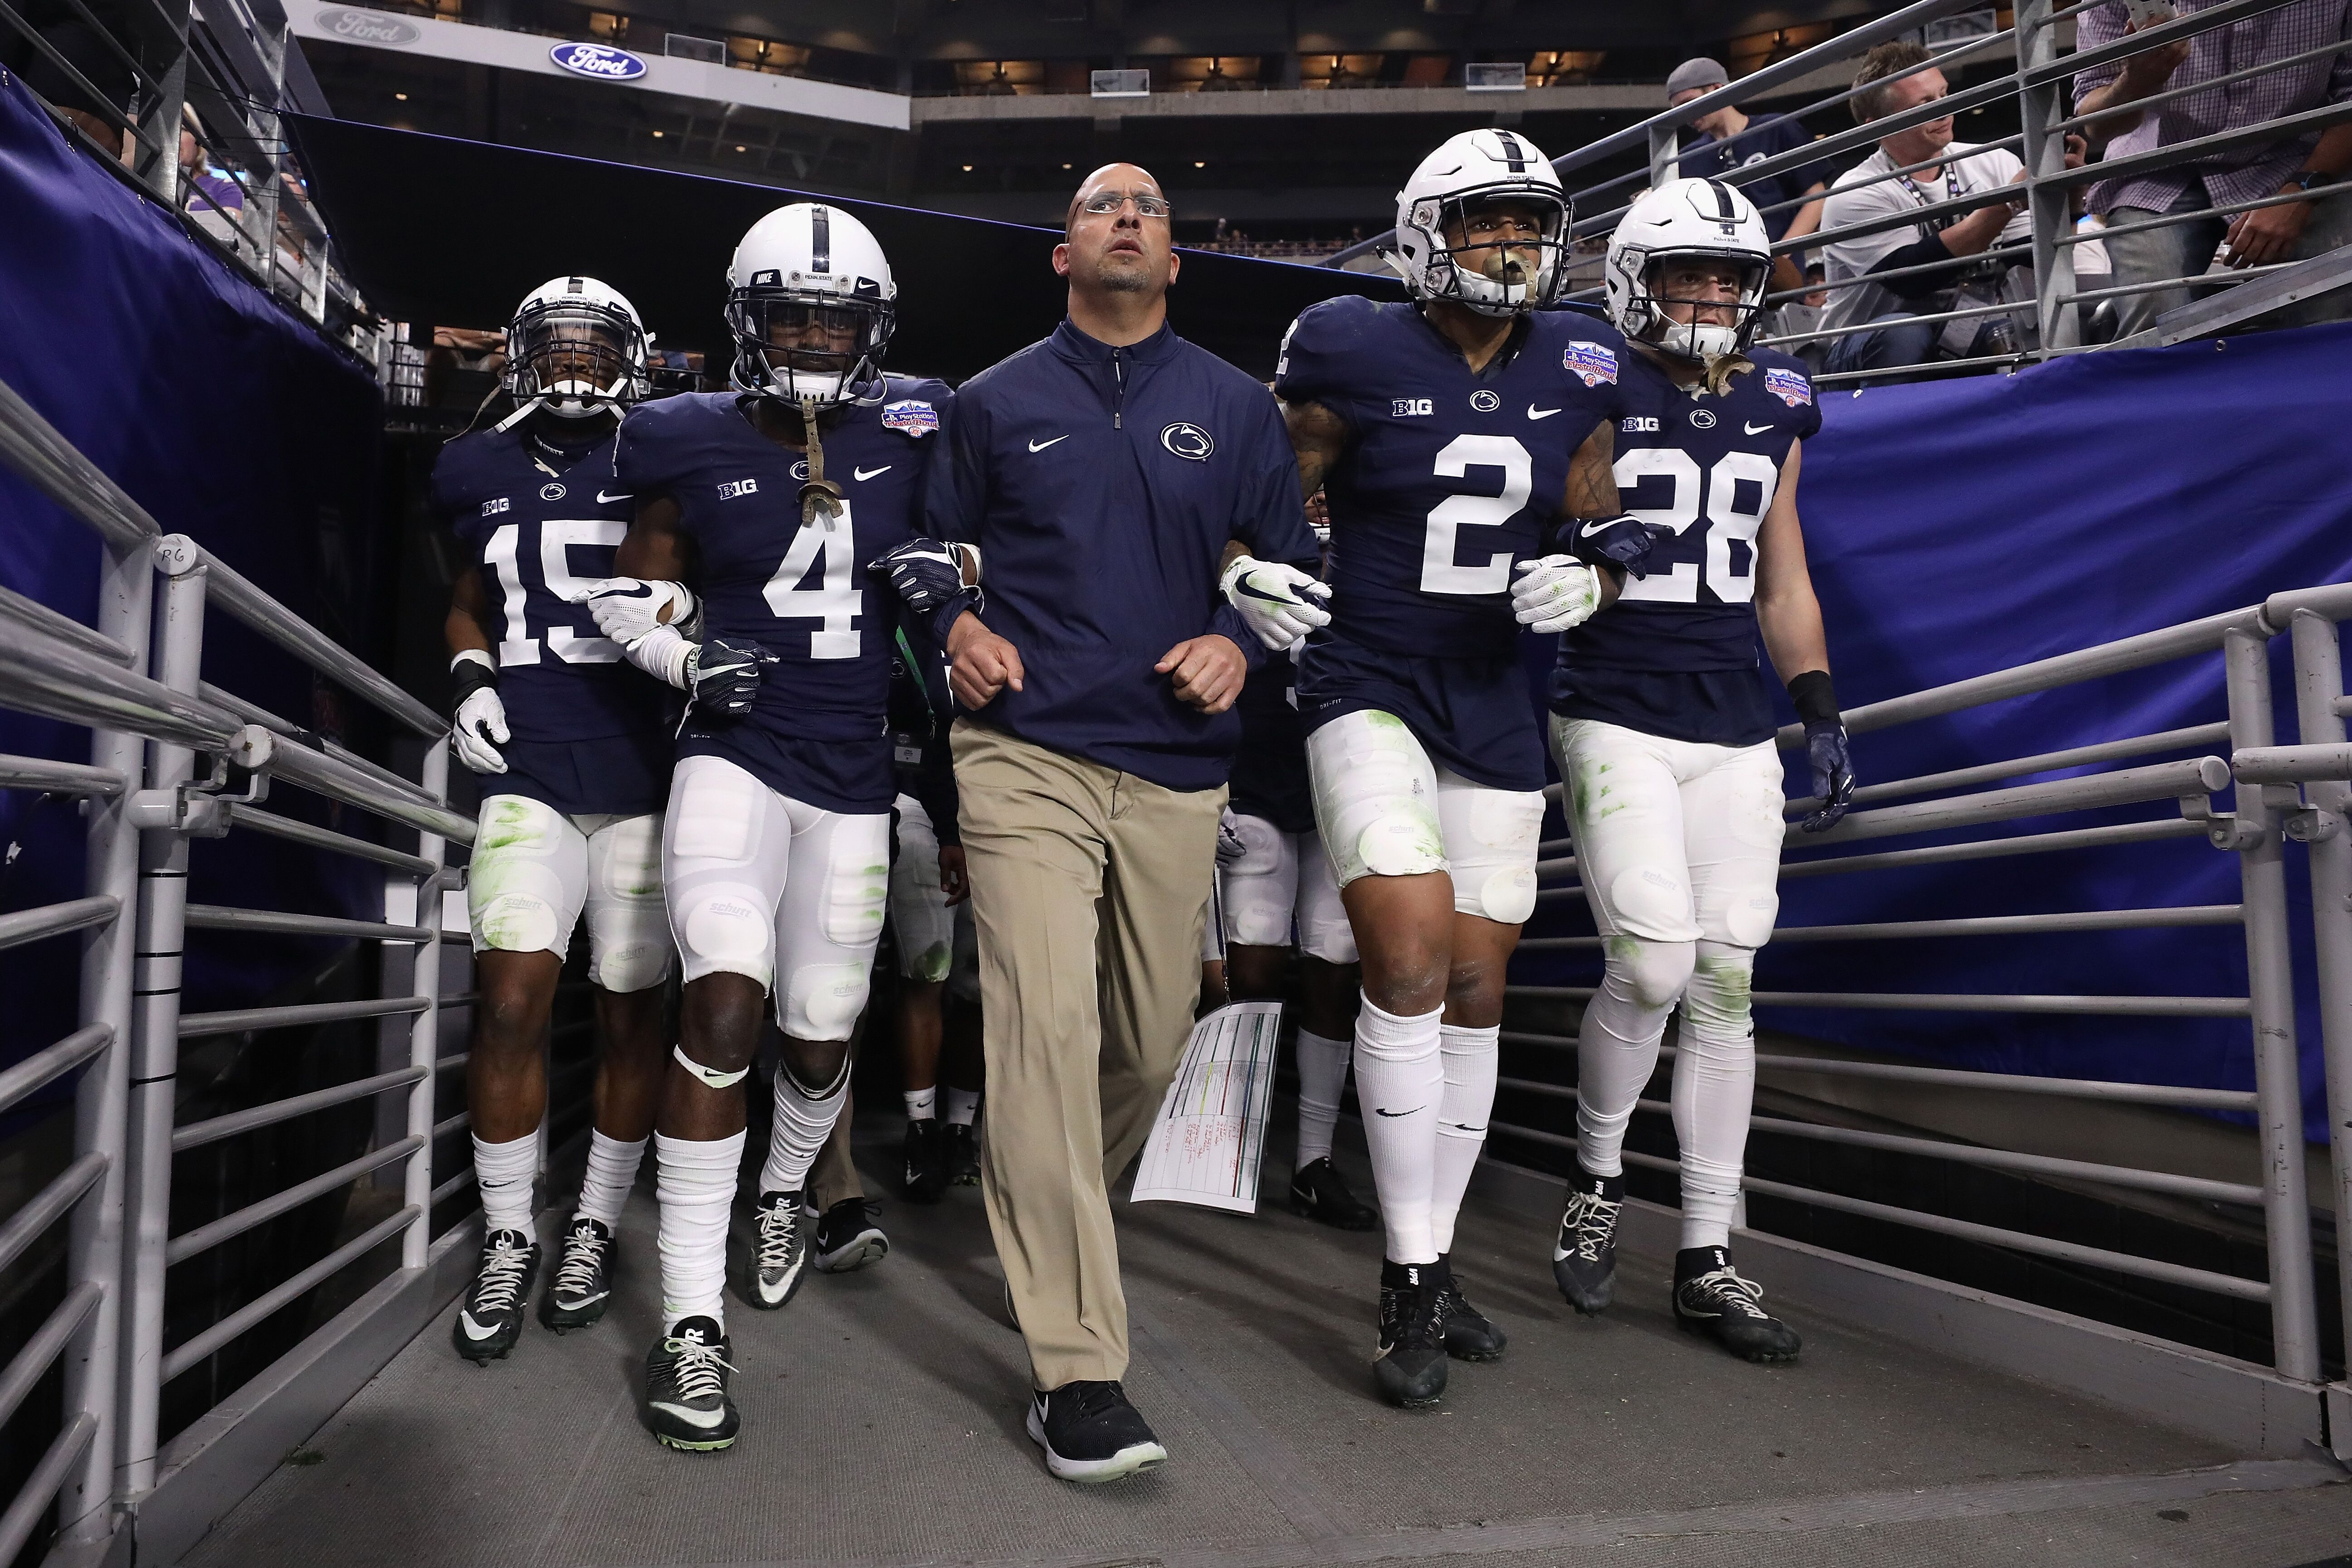 Penn State Football News Briefing: Recruiting commitments, what to do with Stevens